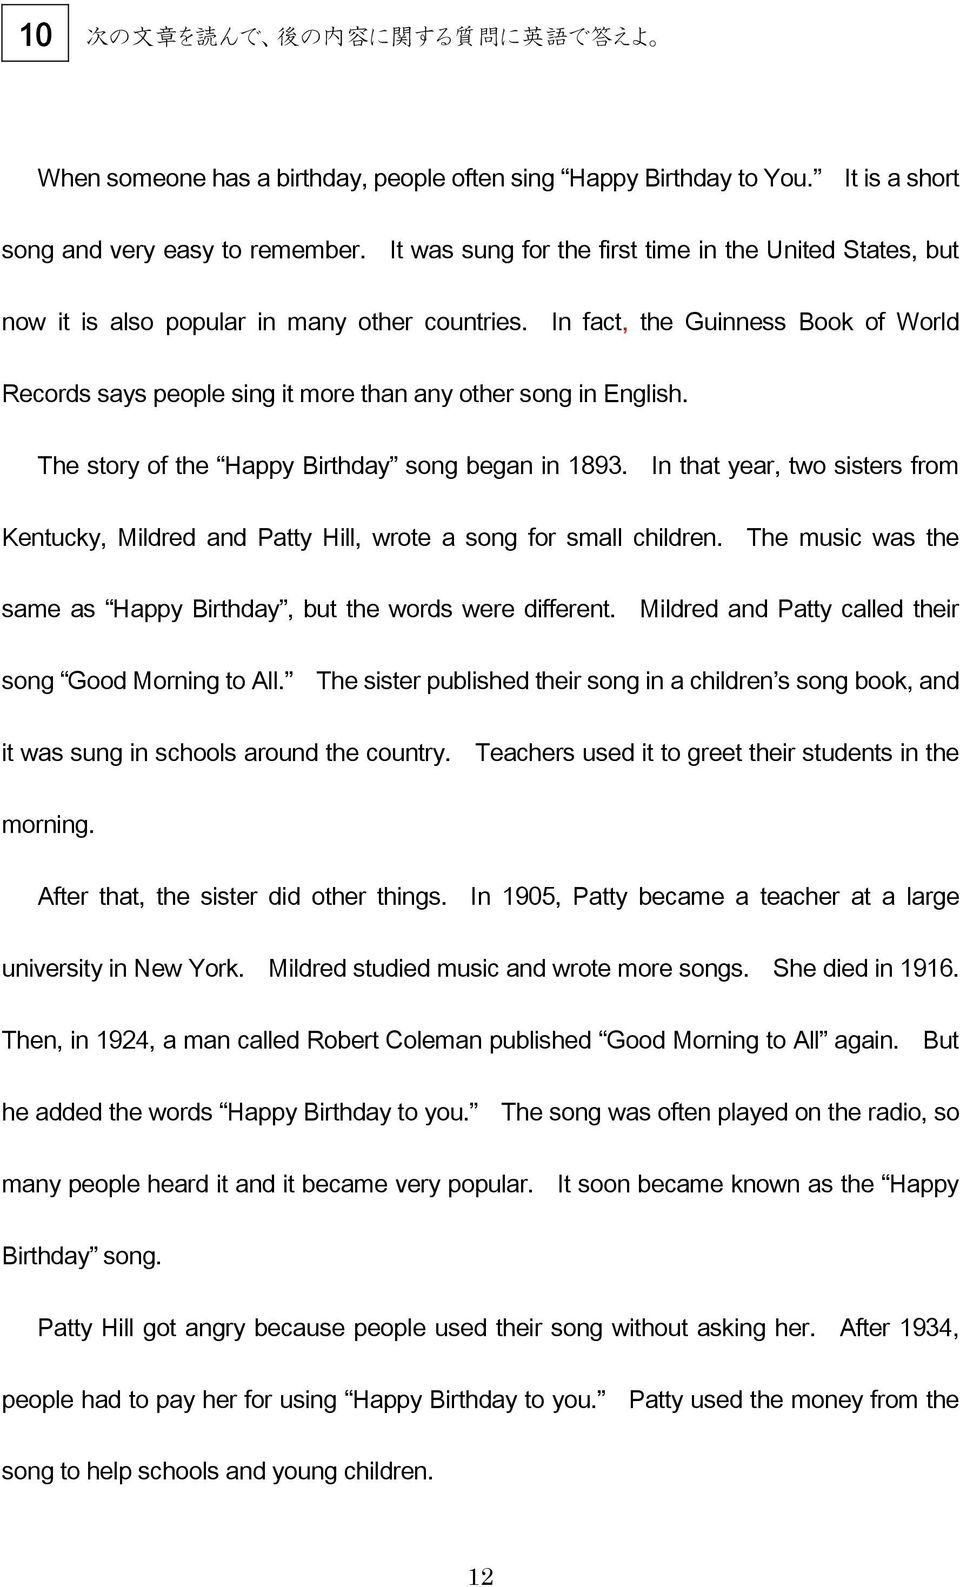 In fact, the Guinness Book of World Records says people sing it more than any other song in English. The story of the Happy Birthday song began in 1893.